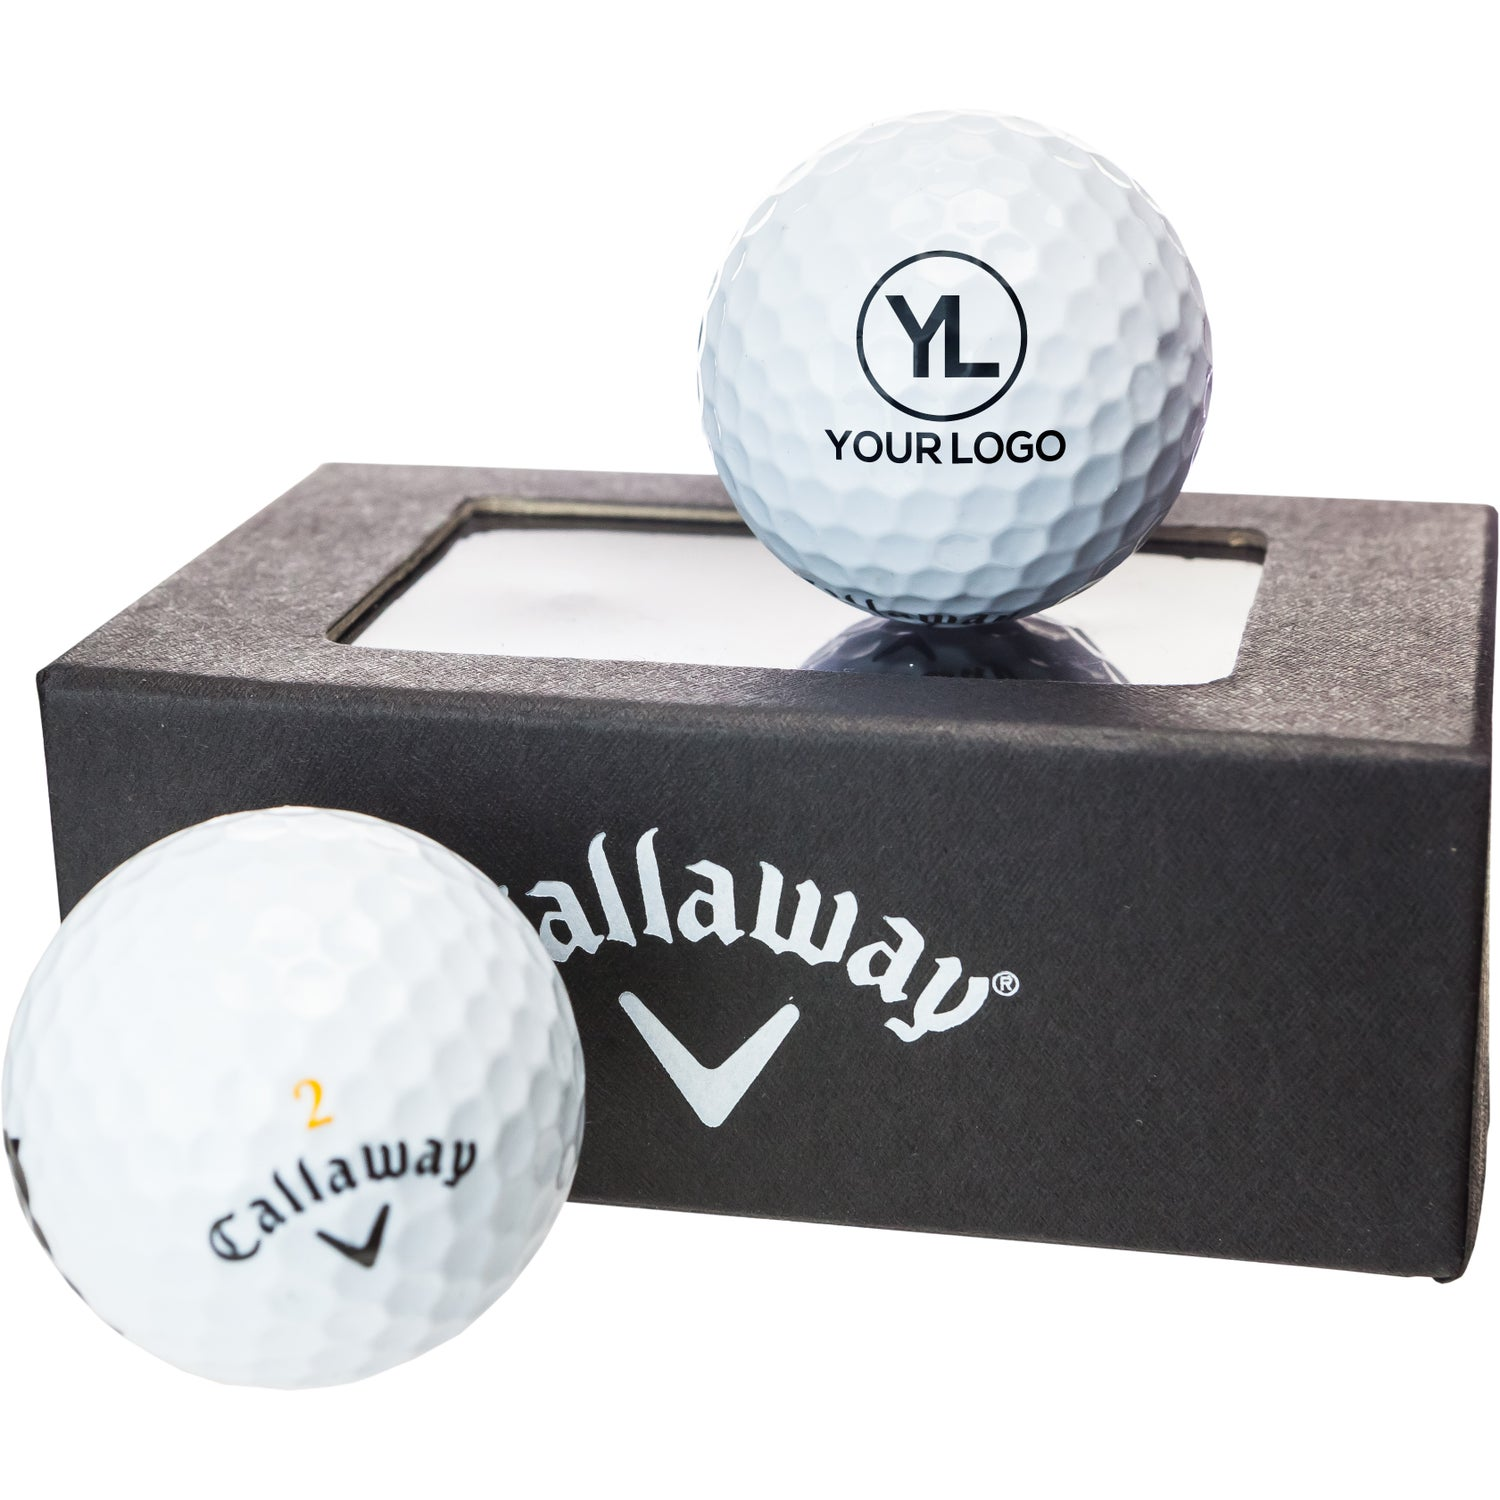 an overview of the callaway golf company Callaway golf company - company profile, information, business description,  history, background information on callaway golf company.